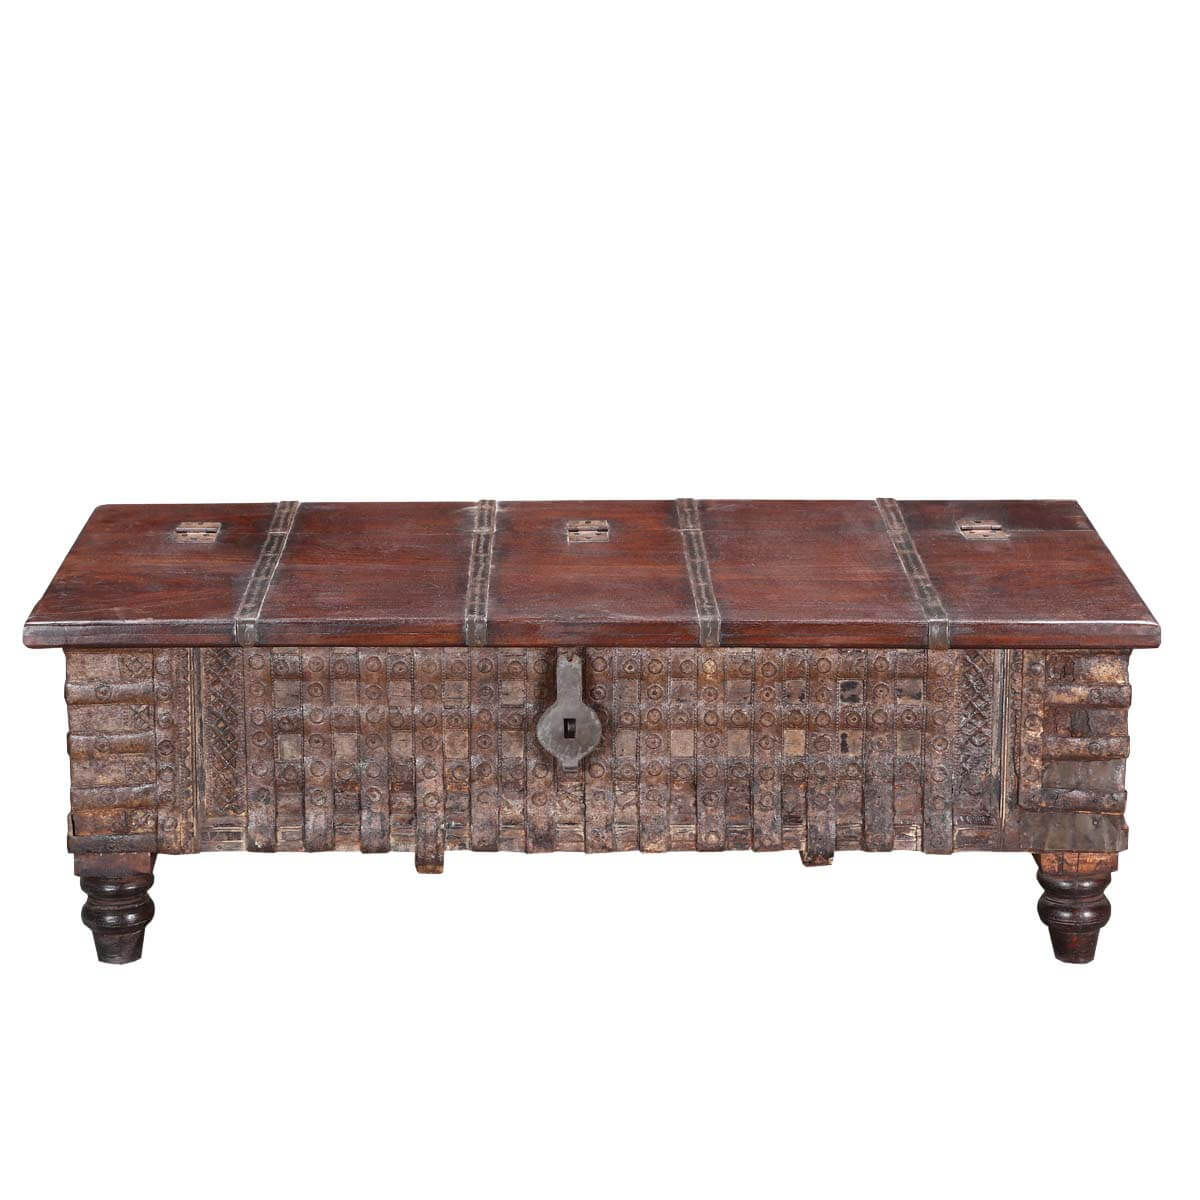 Tudor rustic reclaimed wood 52 standing coffee table chest for Reclaimed coffee table